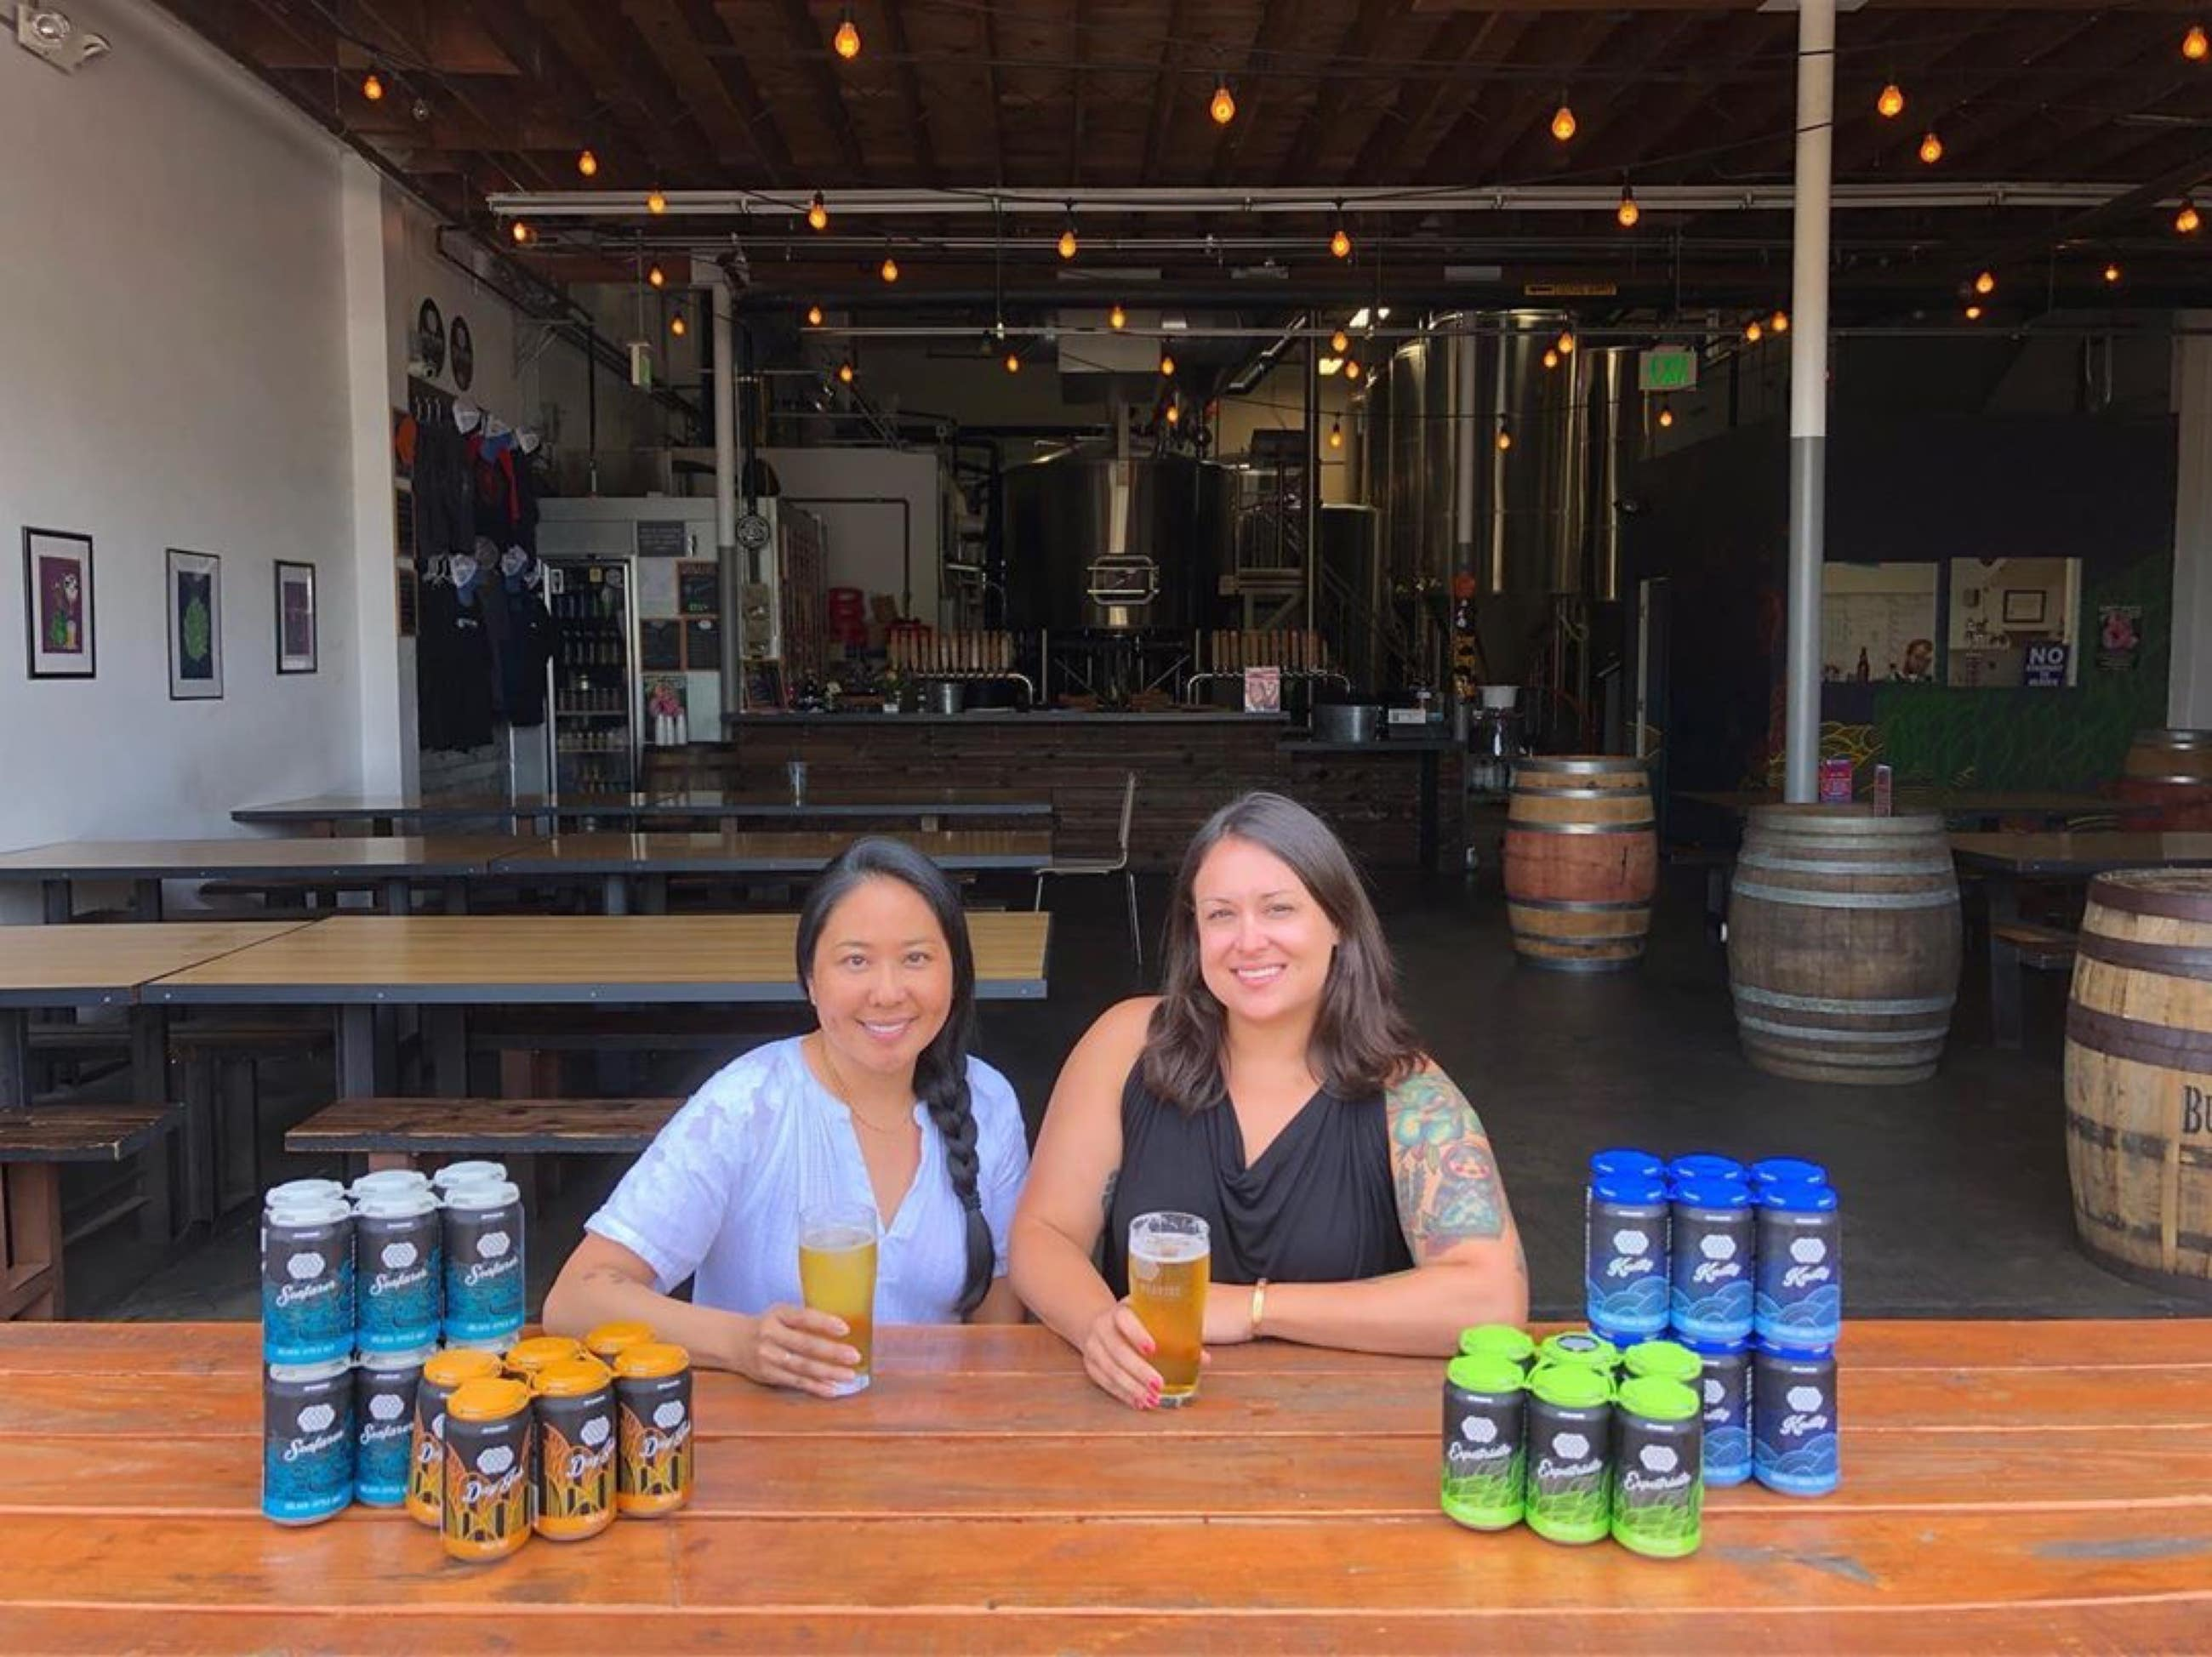 Lynne Weaver and Alexandra Nowell at Three Weavers Brewing Company